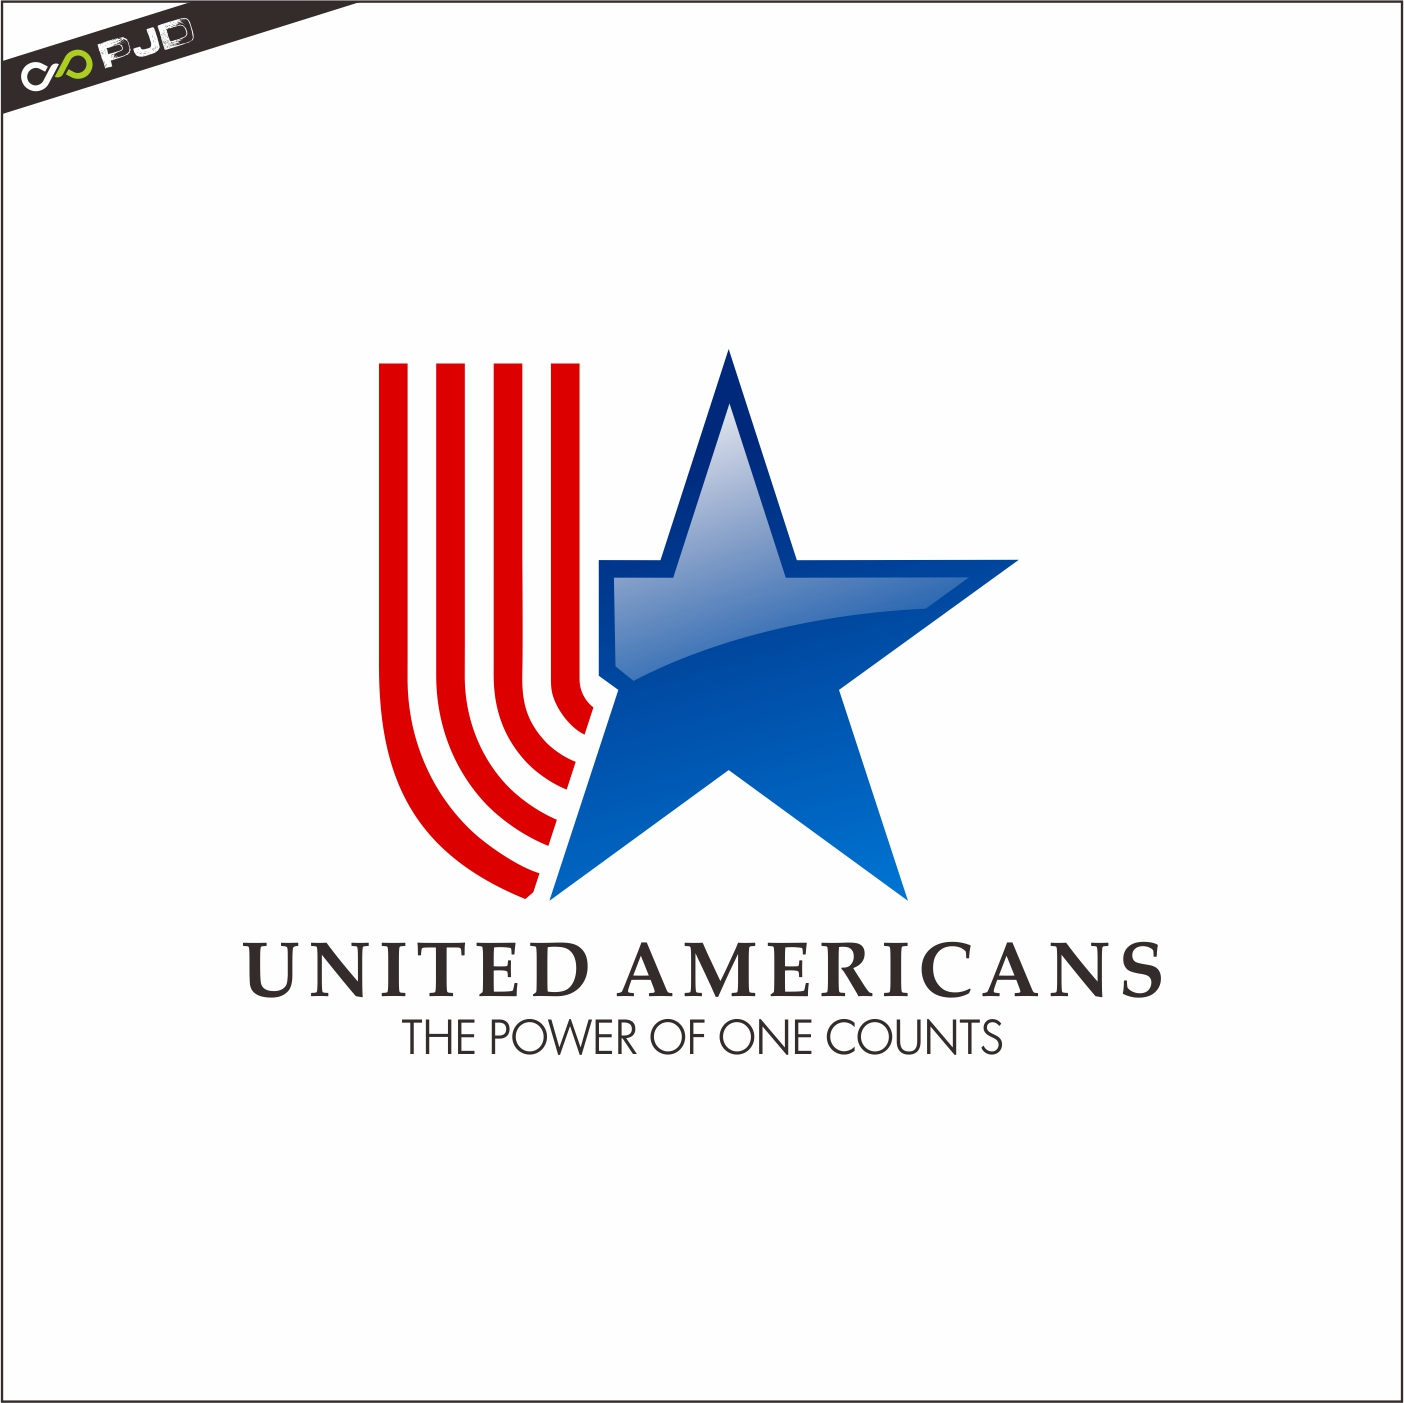 Logo Design by PJD - Entry No. 178 in the Logo Design Contest Creative Logo Design for United Americans.